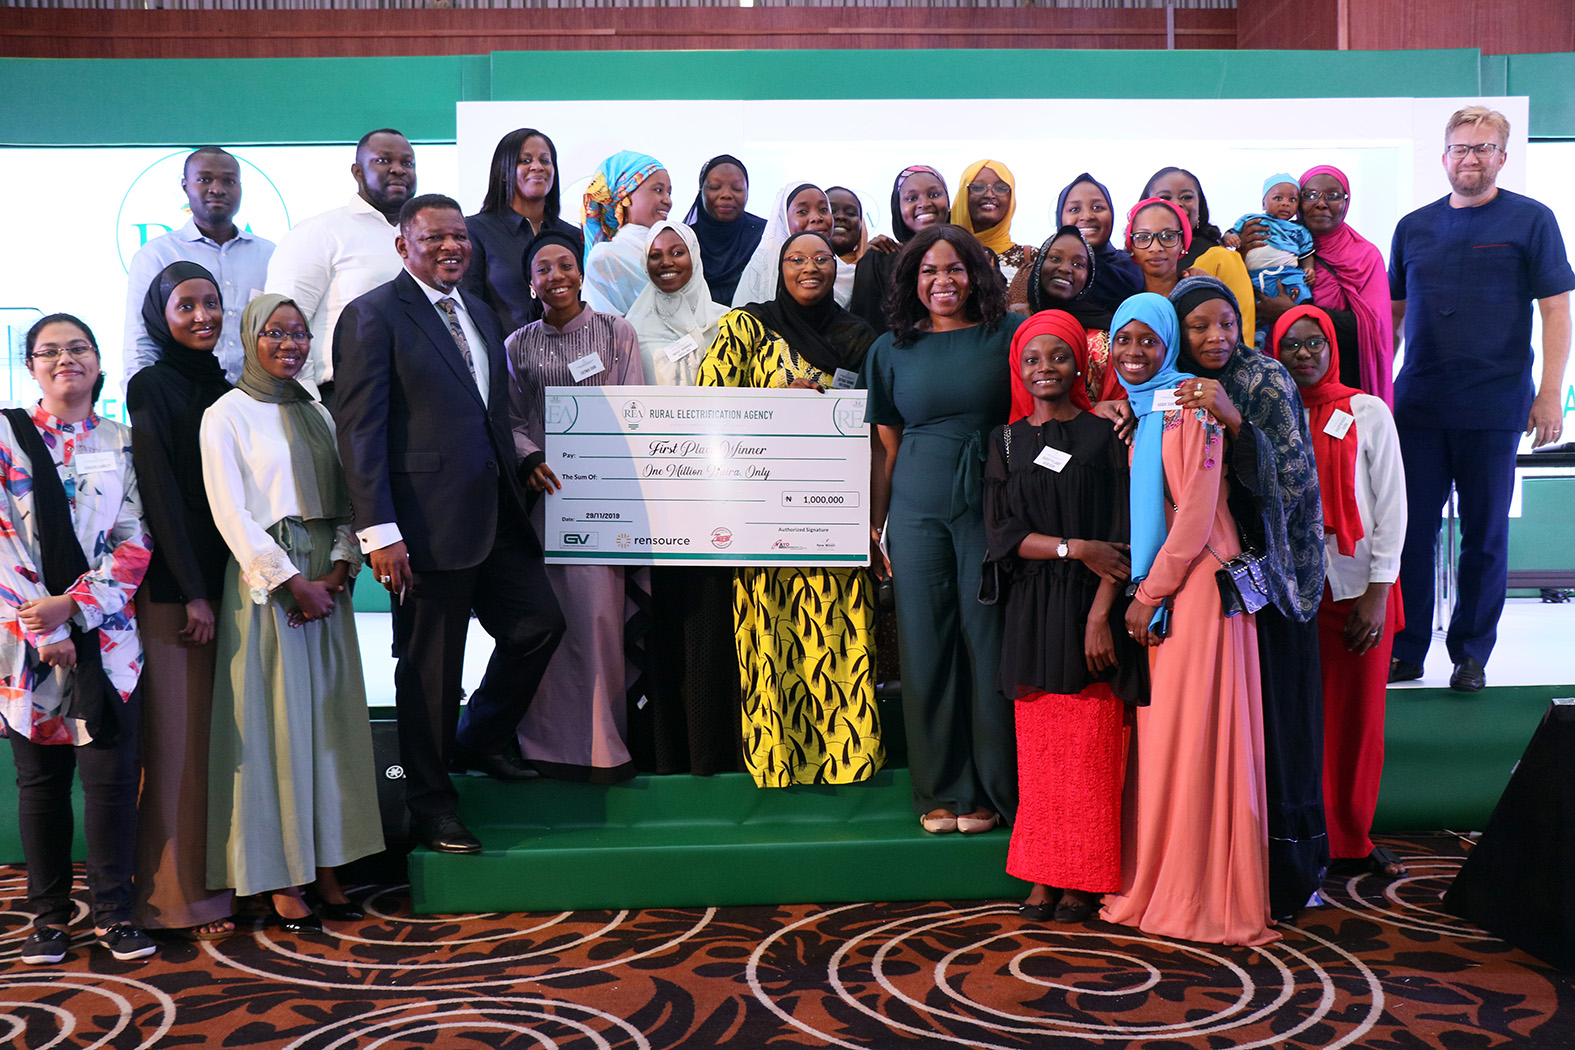 Winner of the Project Shark Tank ,Bayero University Kano Students, Flanked by the Minister of Power State Minister of State Power,Mr Goddy Jedy-Agba,OFR and Managing Director /CEO Rural Electrification Agency,Mrs Damilola Ogunbiyi during the Rural Electrification Energizing Education Programme female Stem Workshop in Lagos